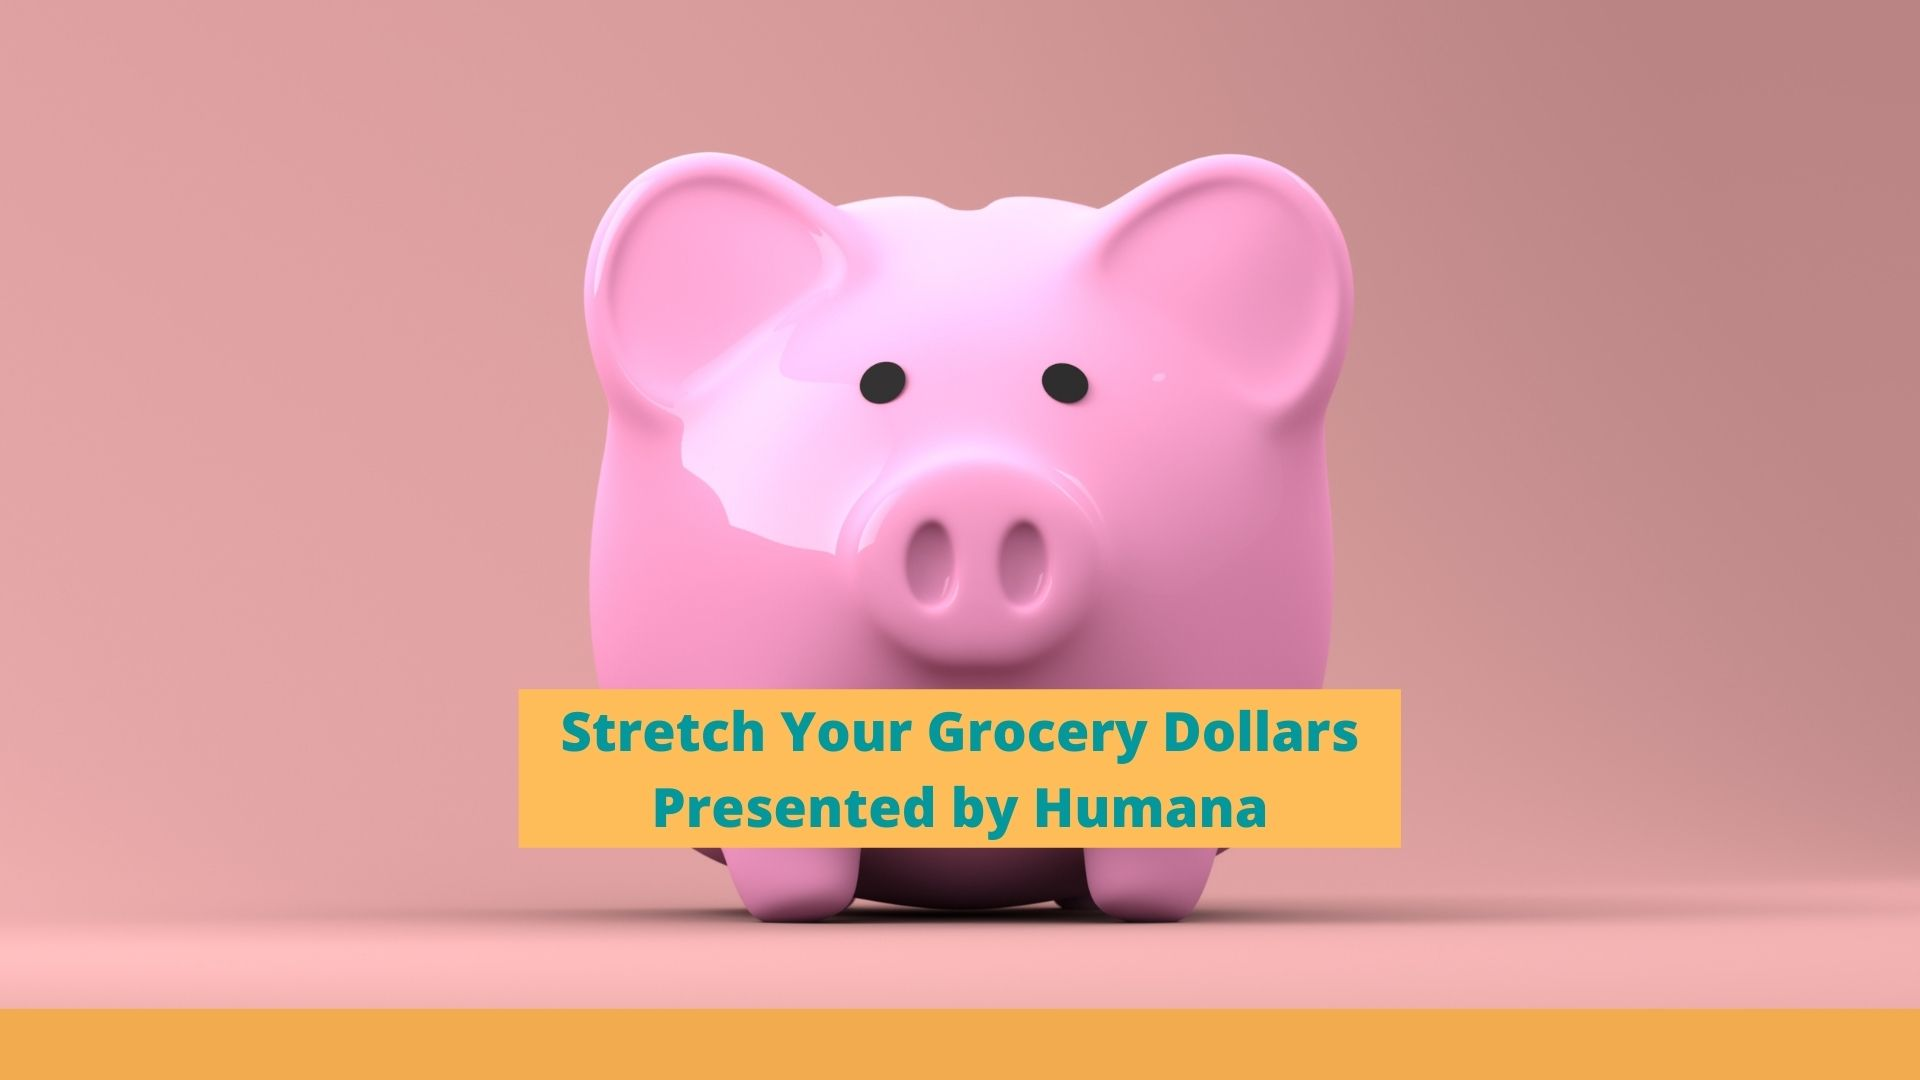 Stretch Your Grocery Dollars Program